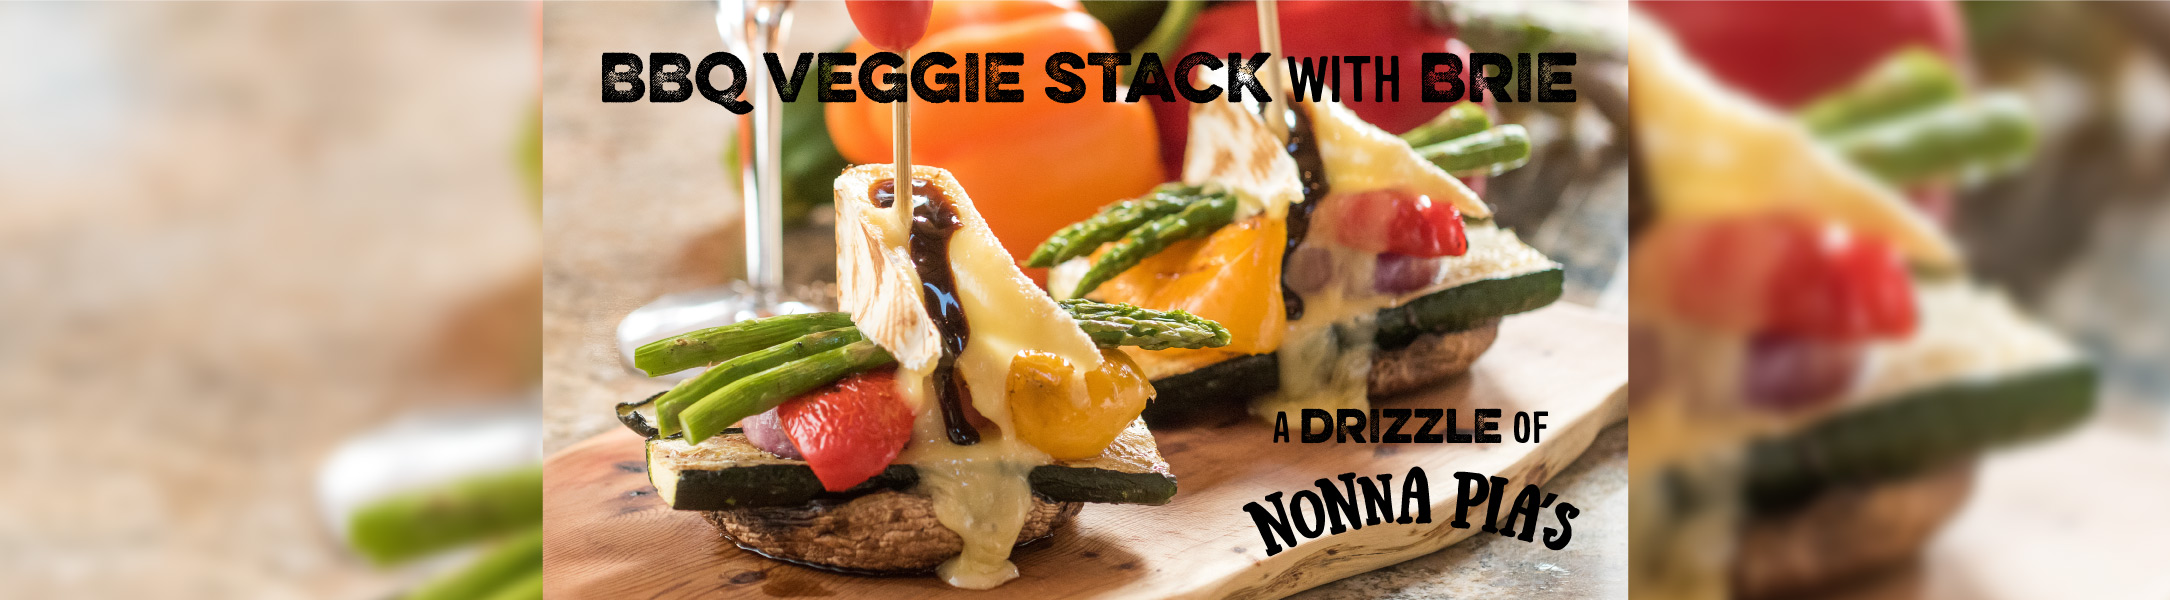 grilled grilled stack with brie cheese